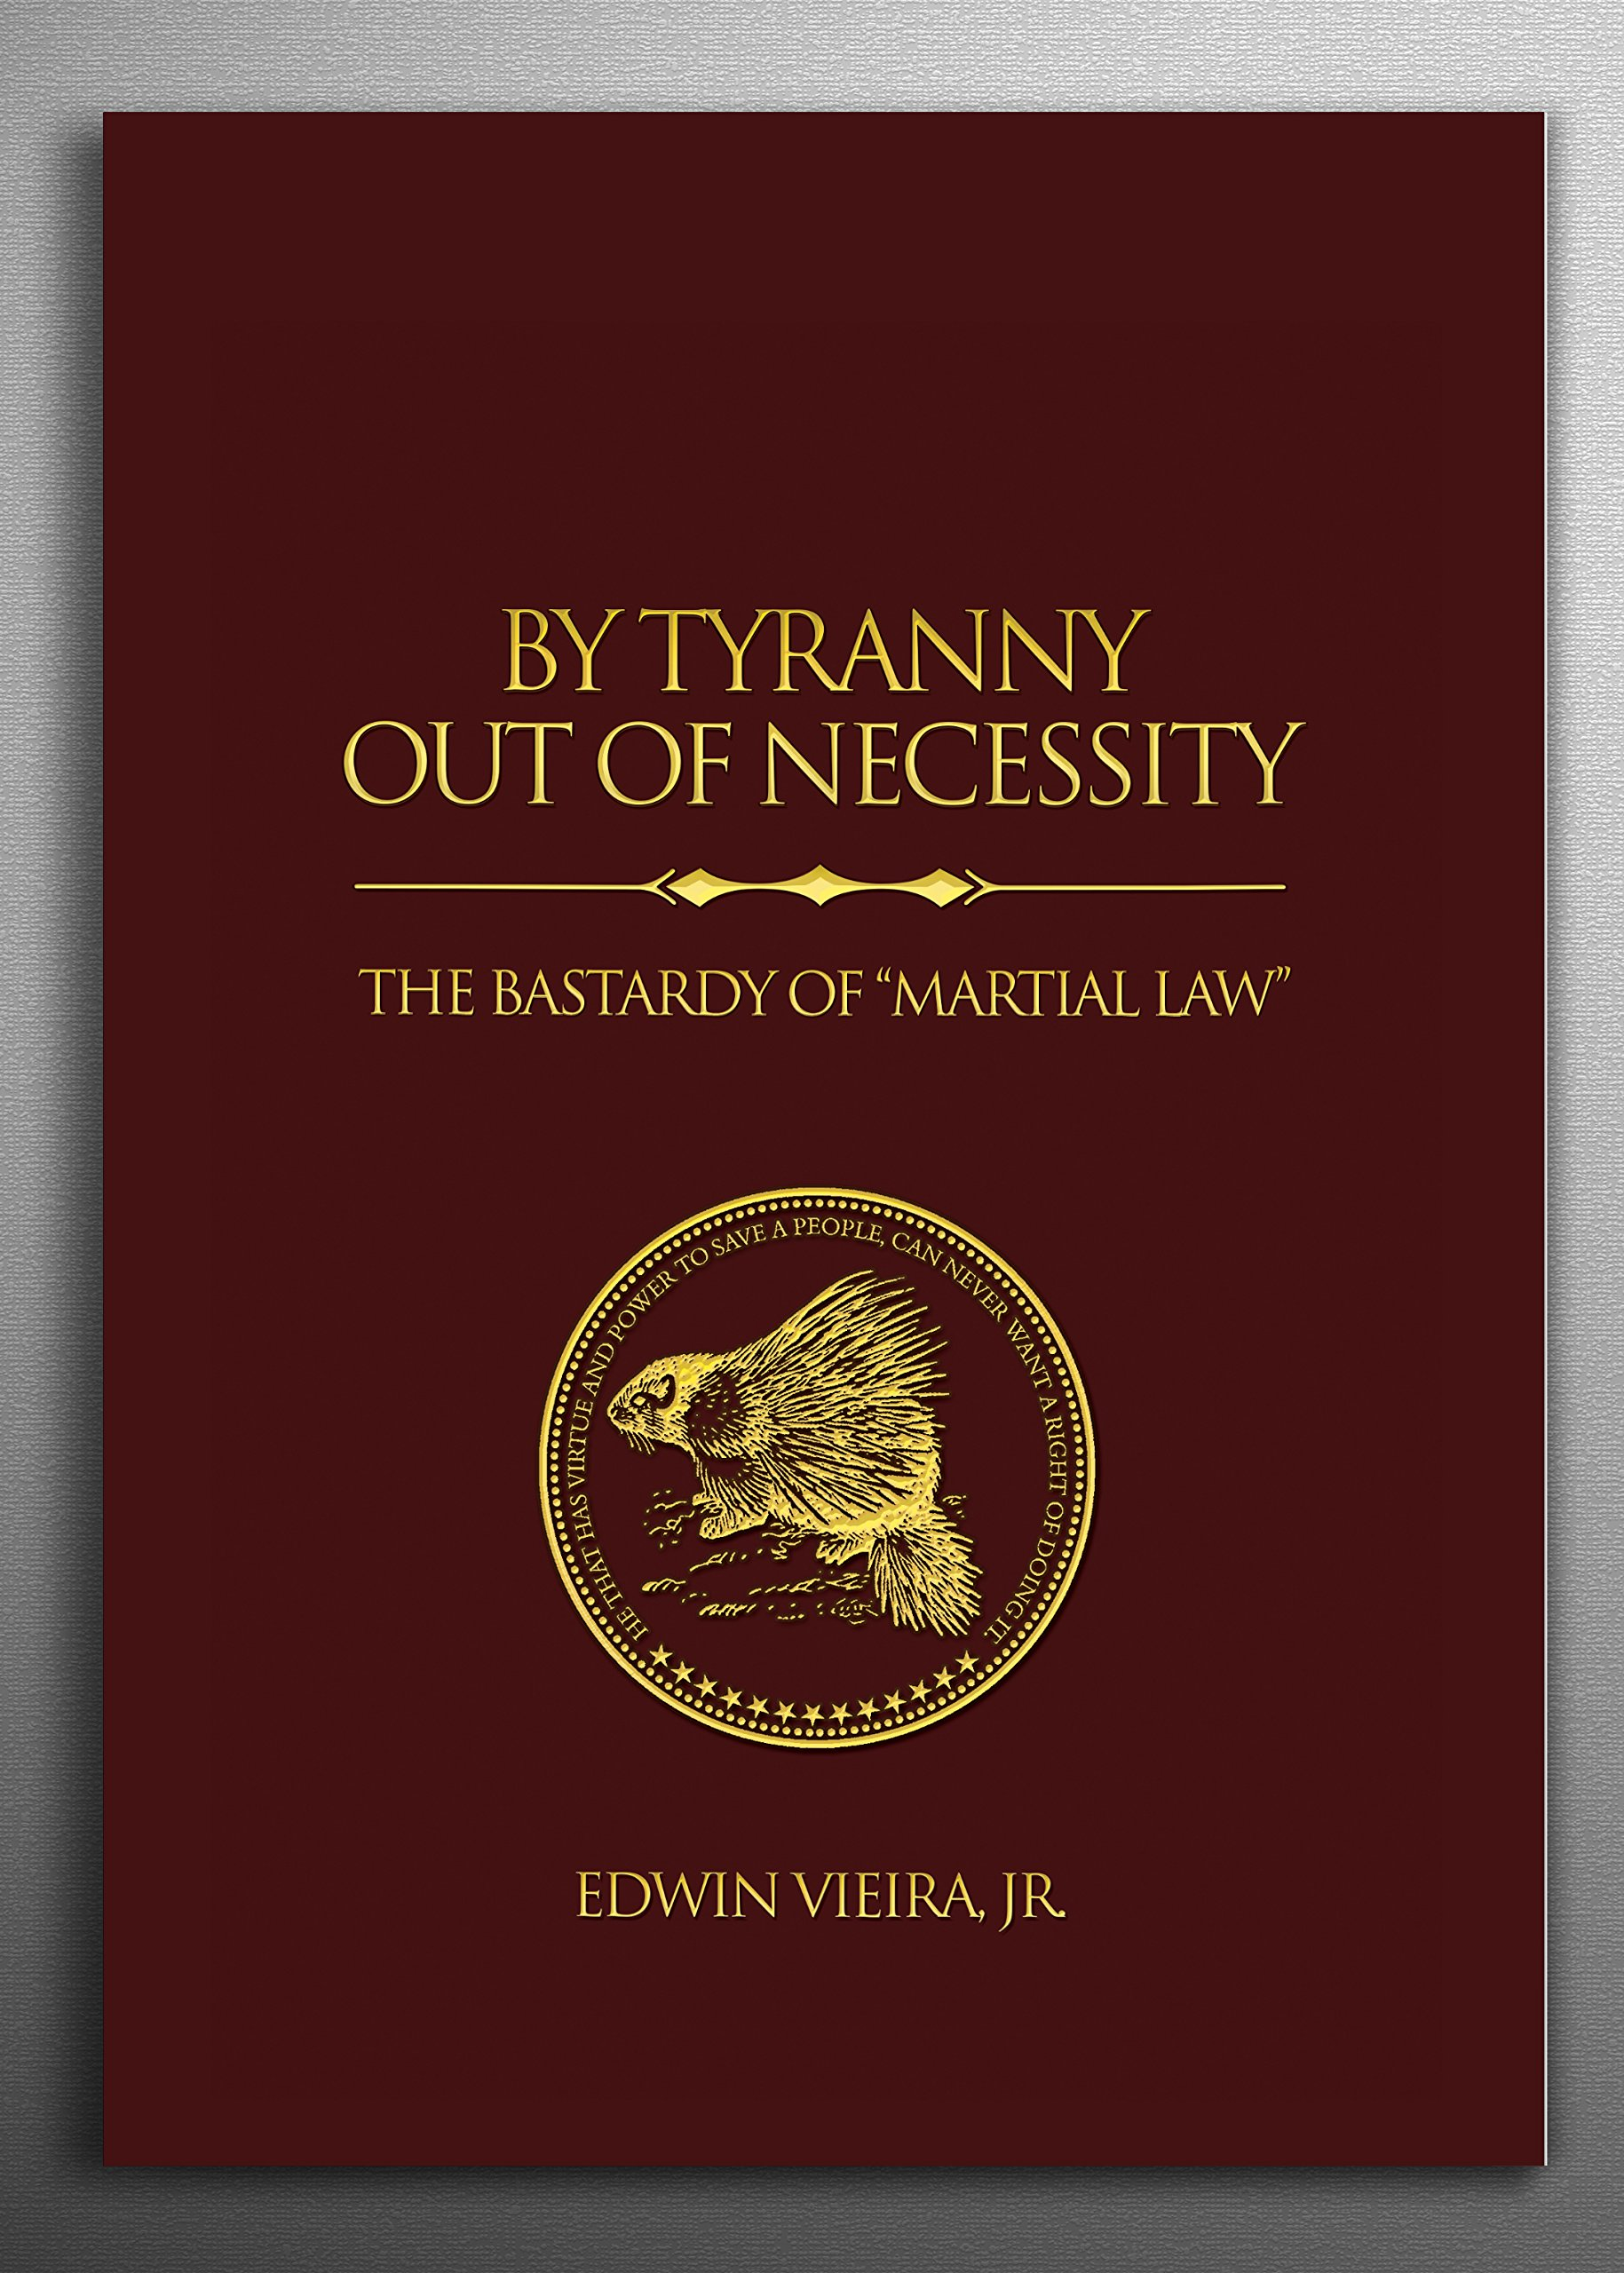 By Tyranny Out of Necessity: The Bastardy of Martial Law